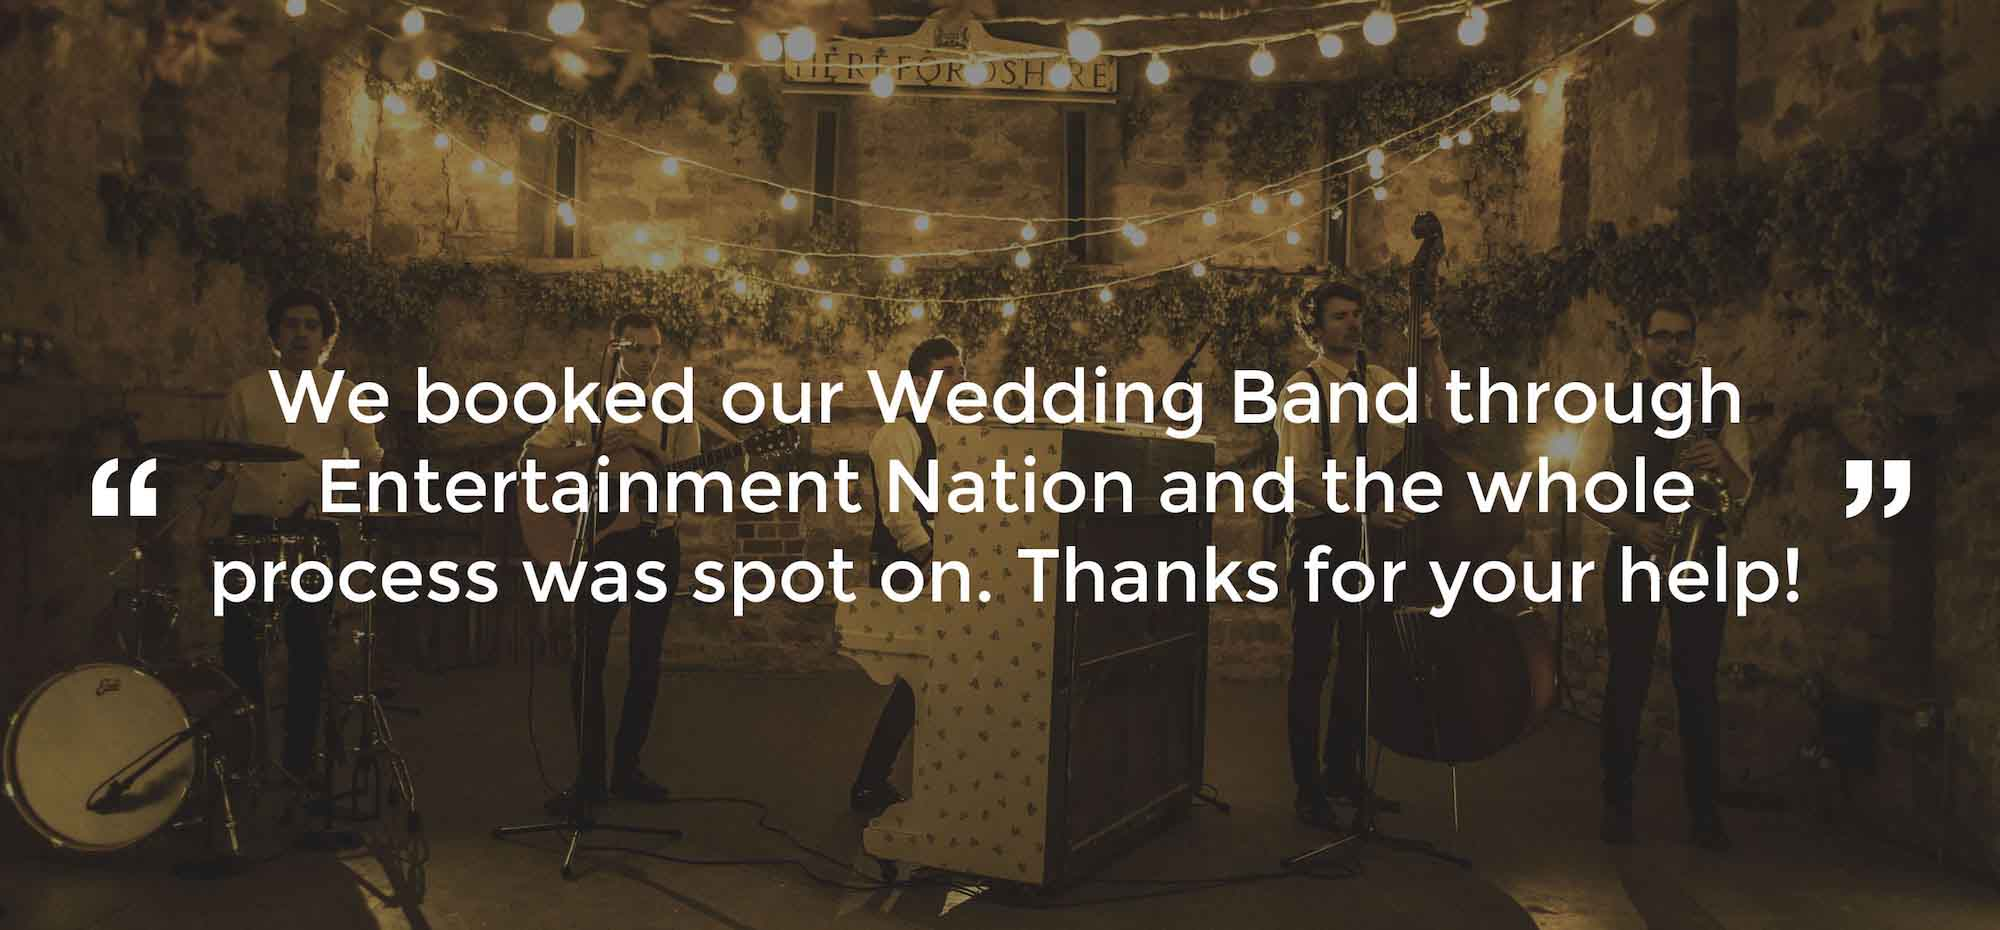 Client Review of a Wedding Band West Midlands